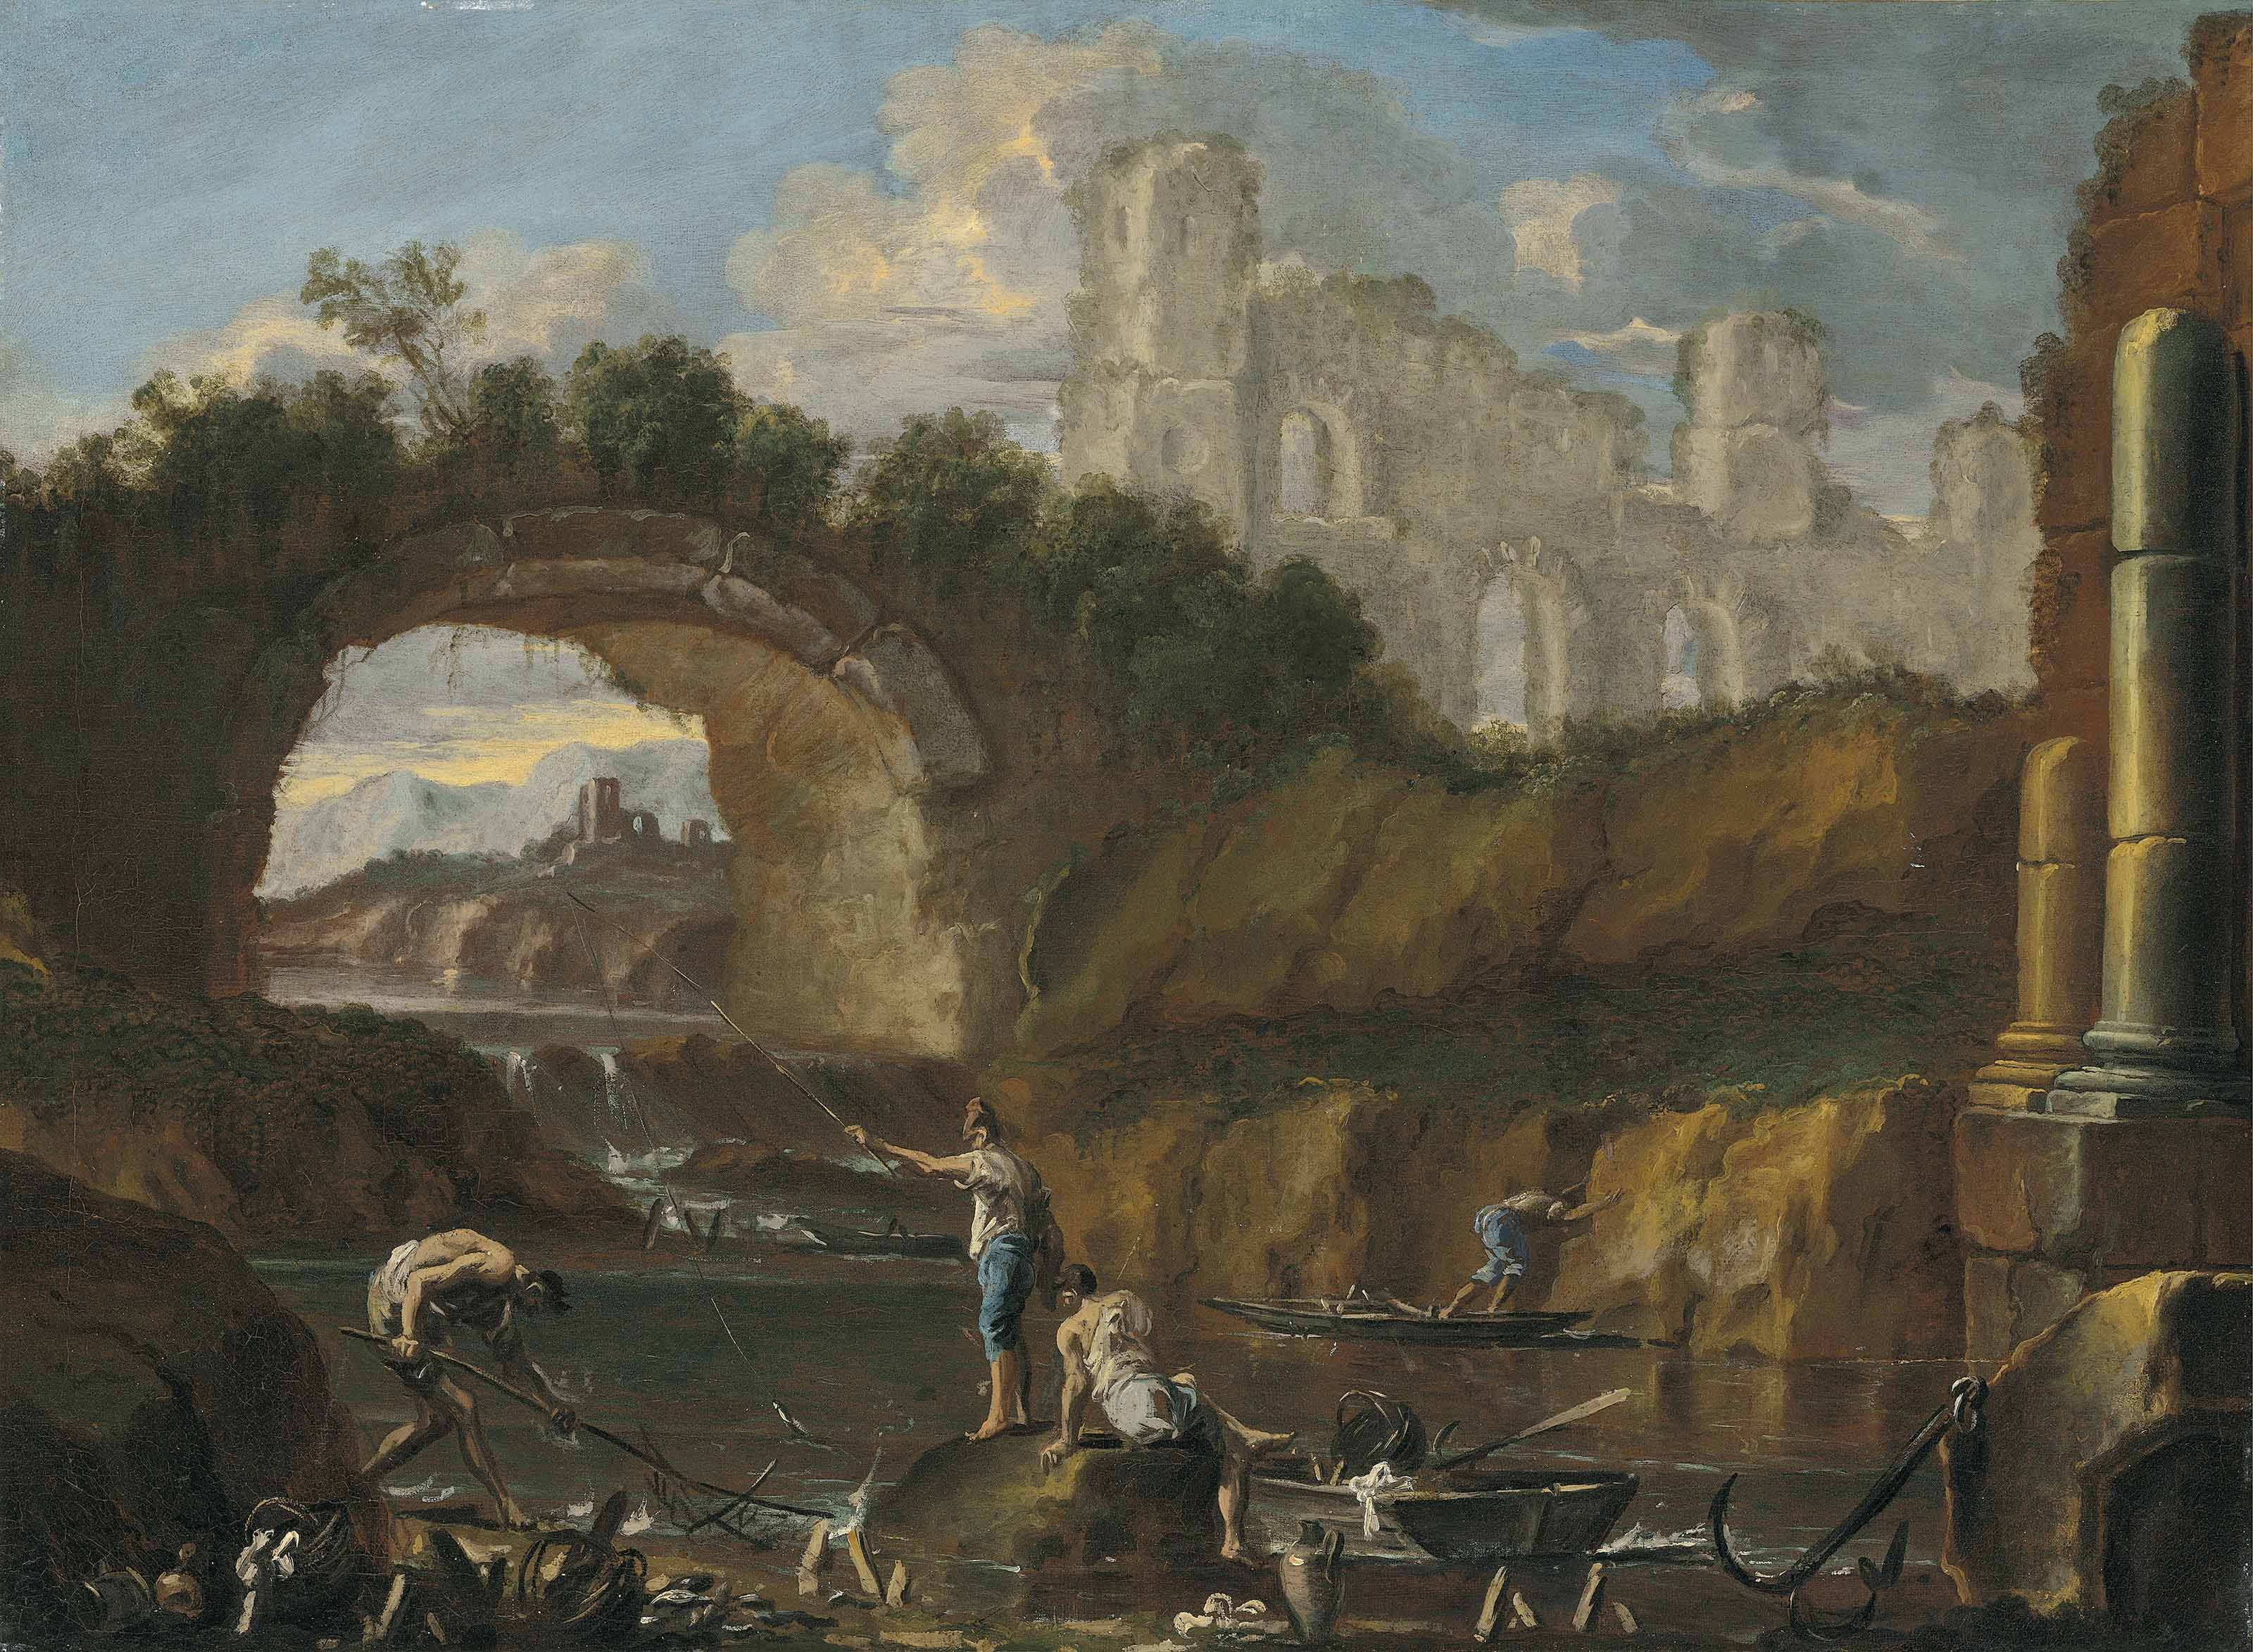 A river landscape with fishermen among ruins